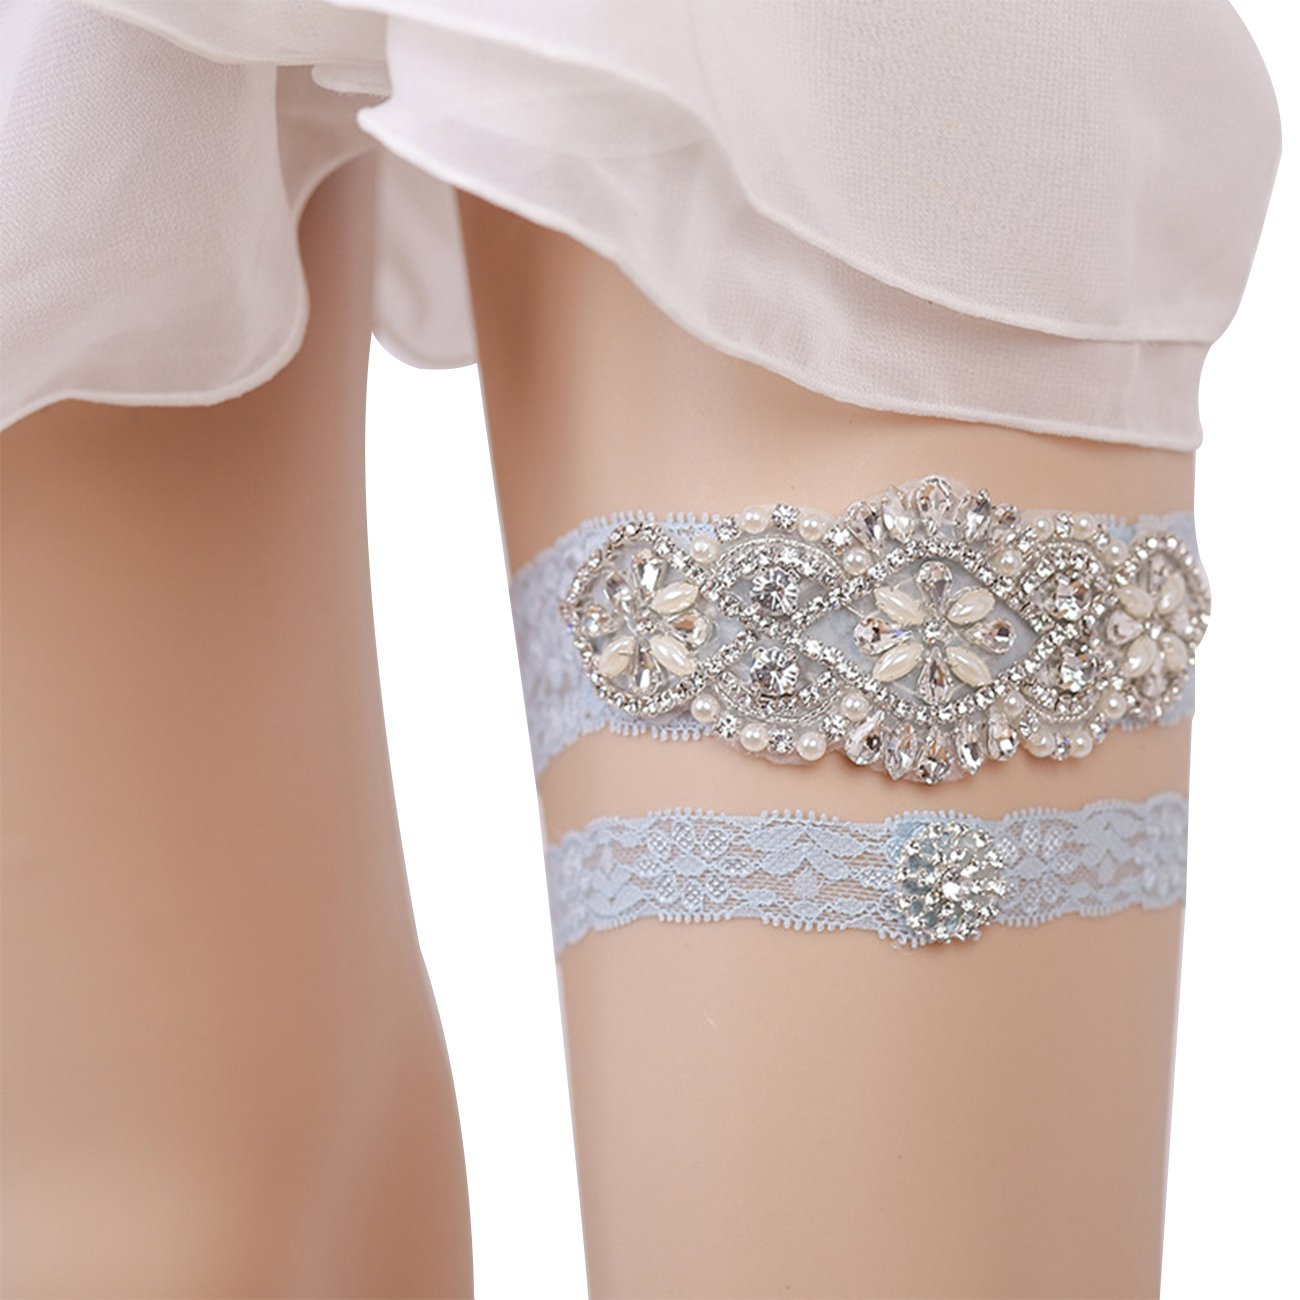 69f012b11 ONE Size The ranges from 17 inches - 23 inches (43cm-58cm) Fashionable and  trendy wedding accessory.Garter for the brides special ...